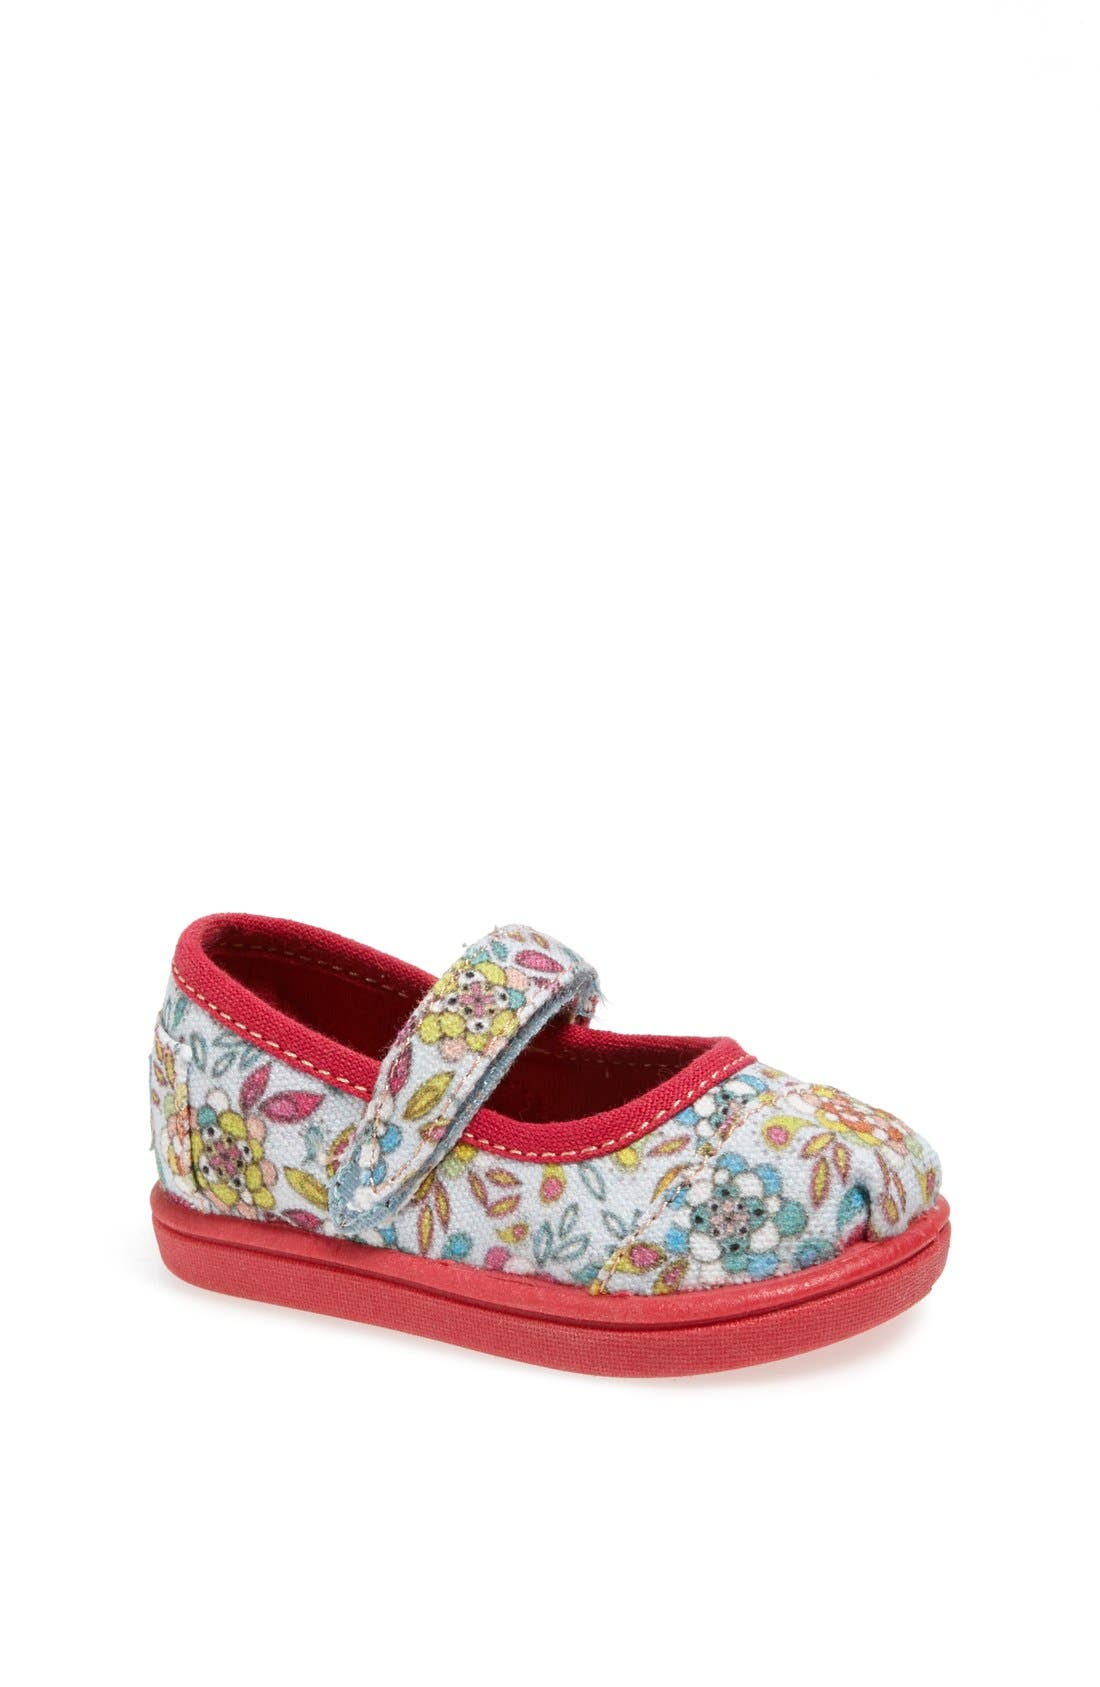 Alternate Image 1 Selected - TOMS 'Tiny - Inked Floral' Mary Jane Flat (Baby, Walker & Toddler)